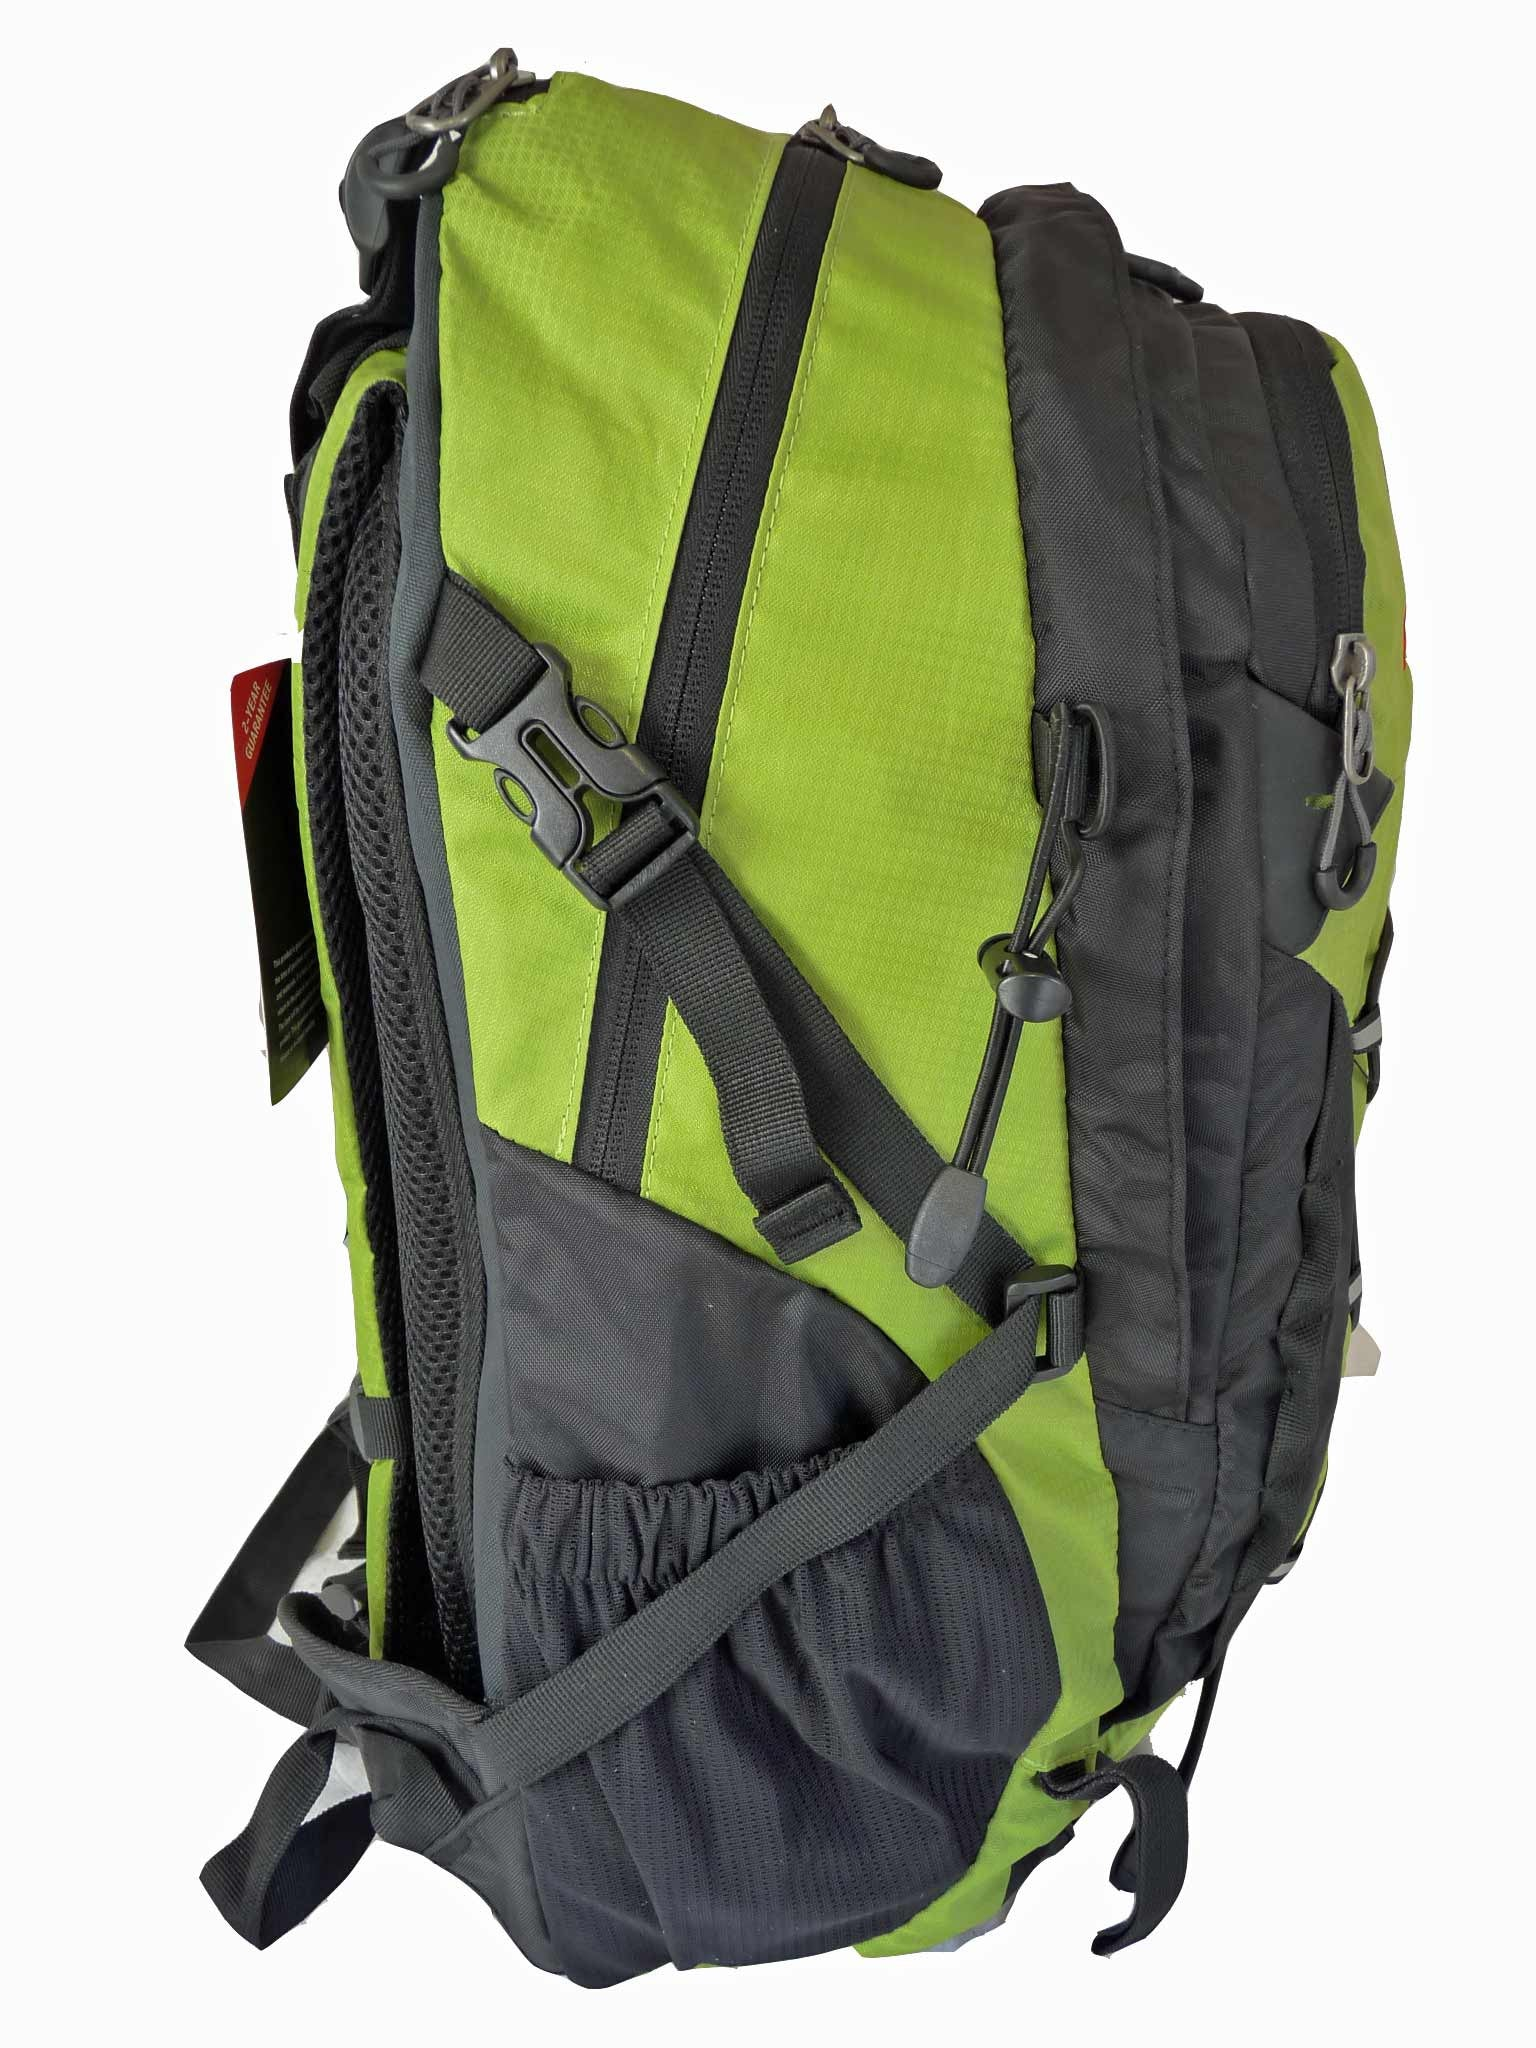 MacBook Air Backpack Rucksack Bag RL23G SIDE SIDE VIEW